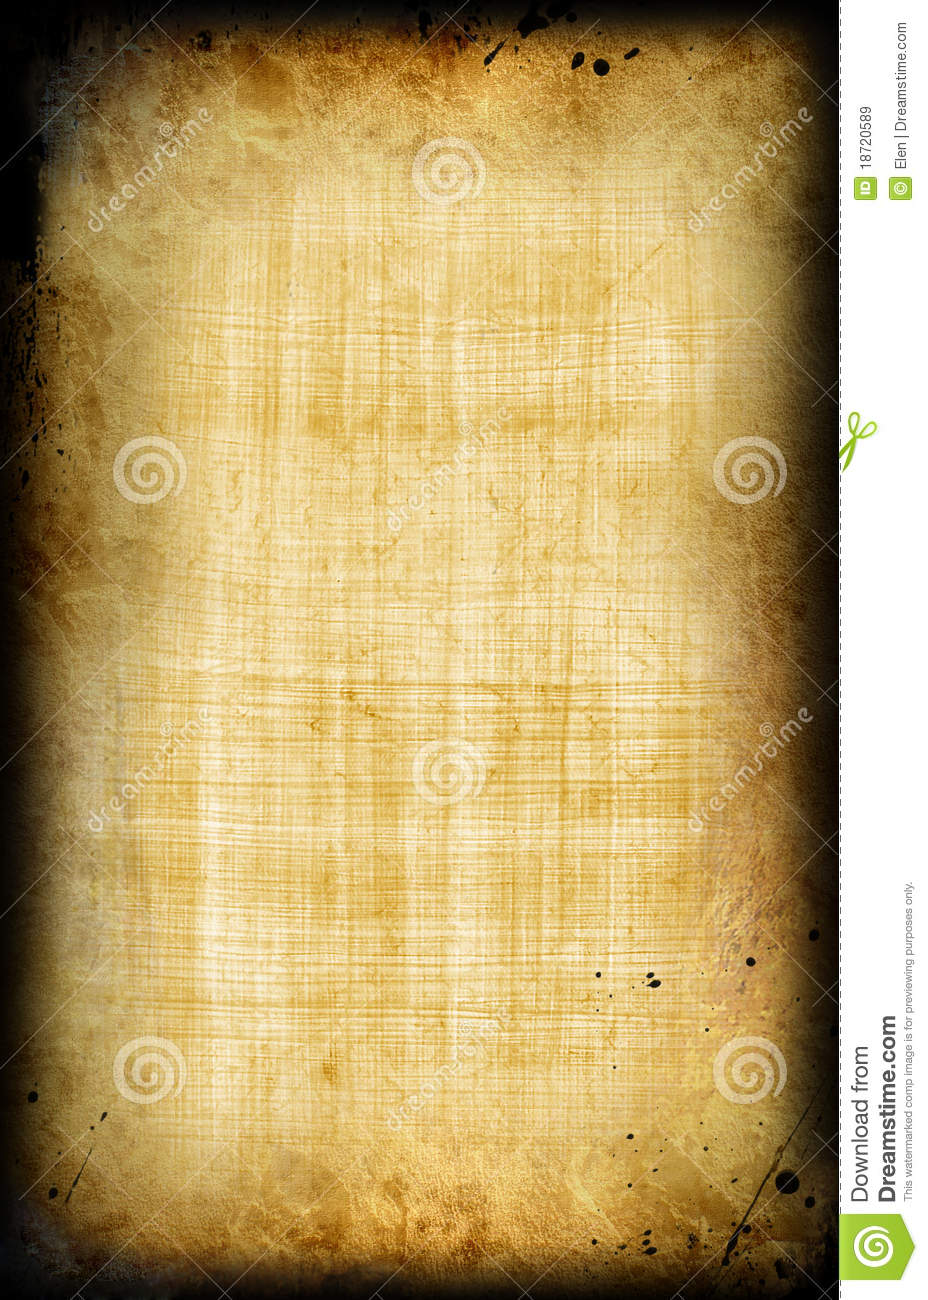 egyptian old papyrus royalty free stock images